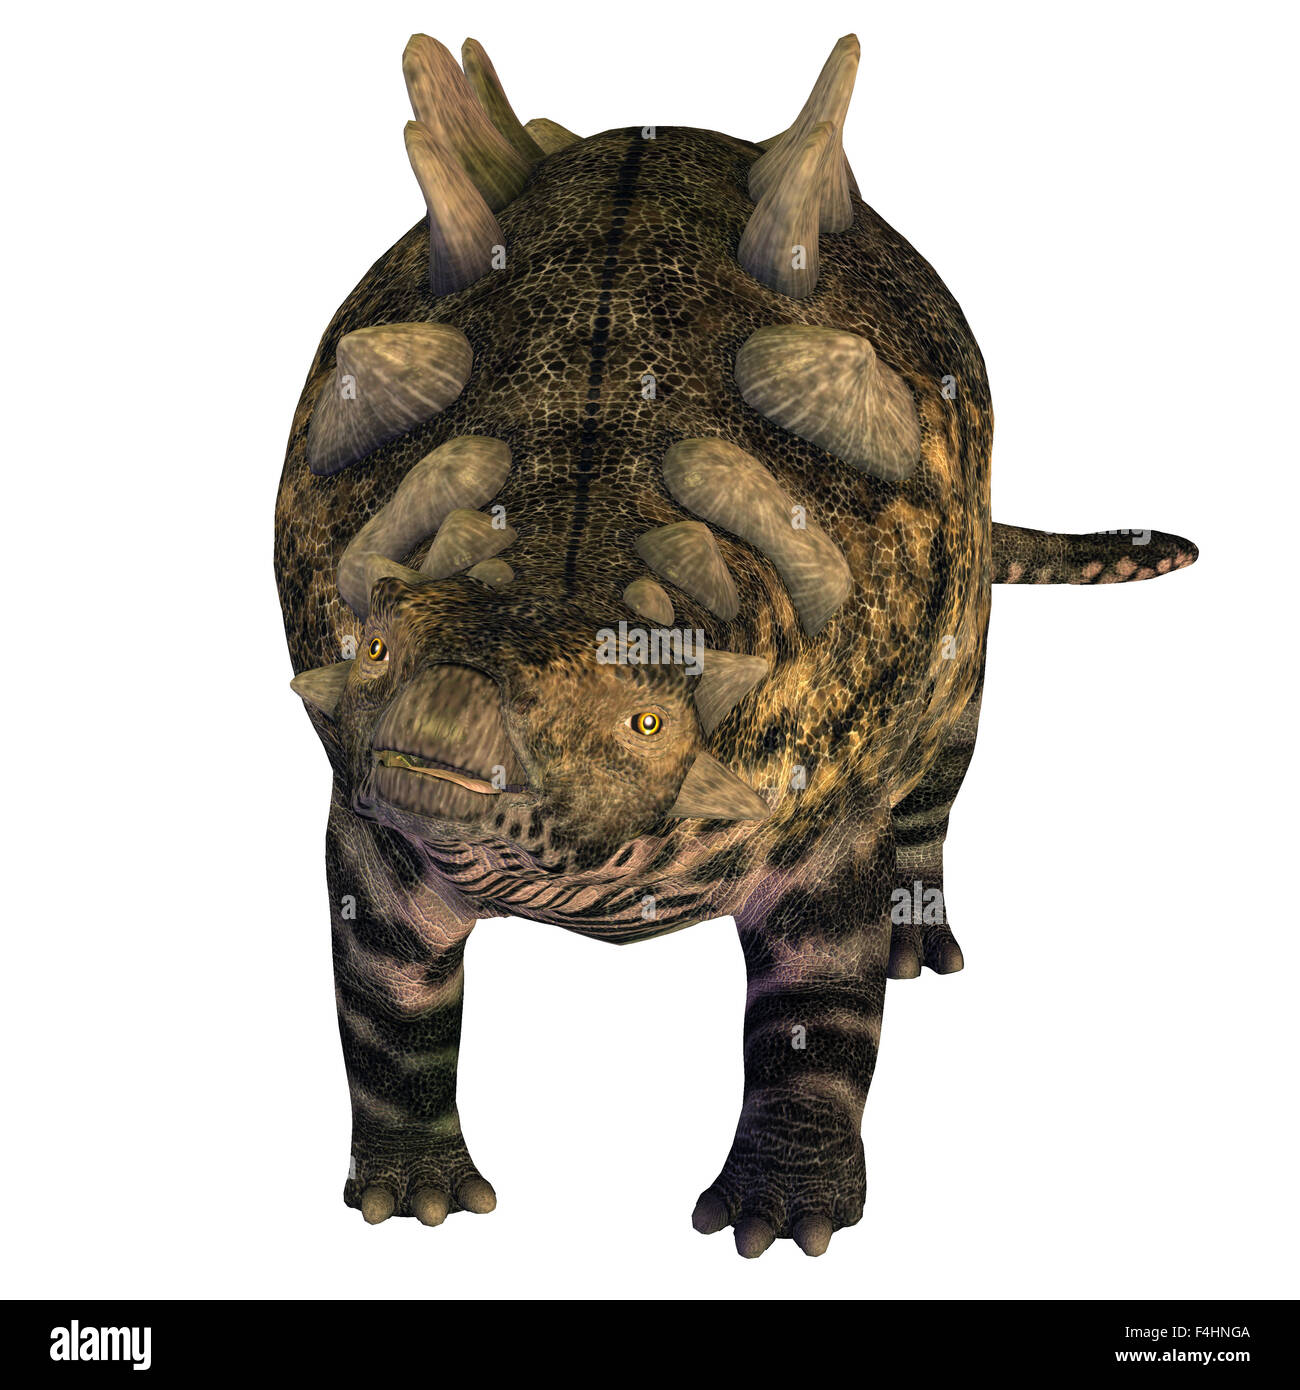 Crichtonsaurus was a heavily armored Ankylosaurus that lived in the Cretaceous Period of China. - Stock Image